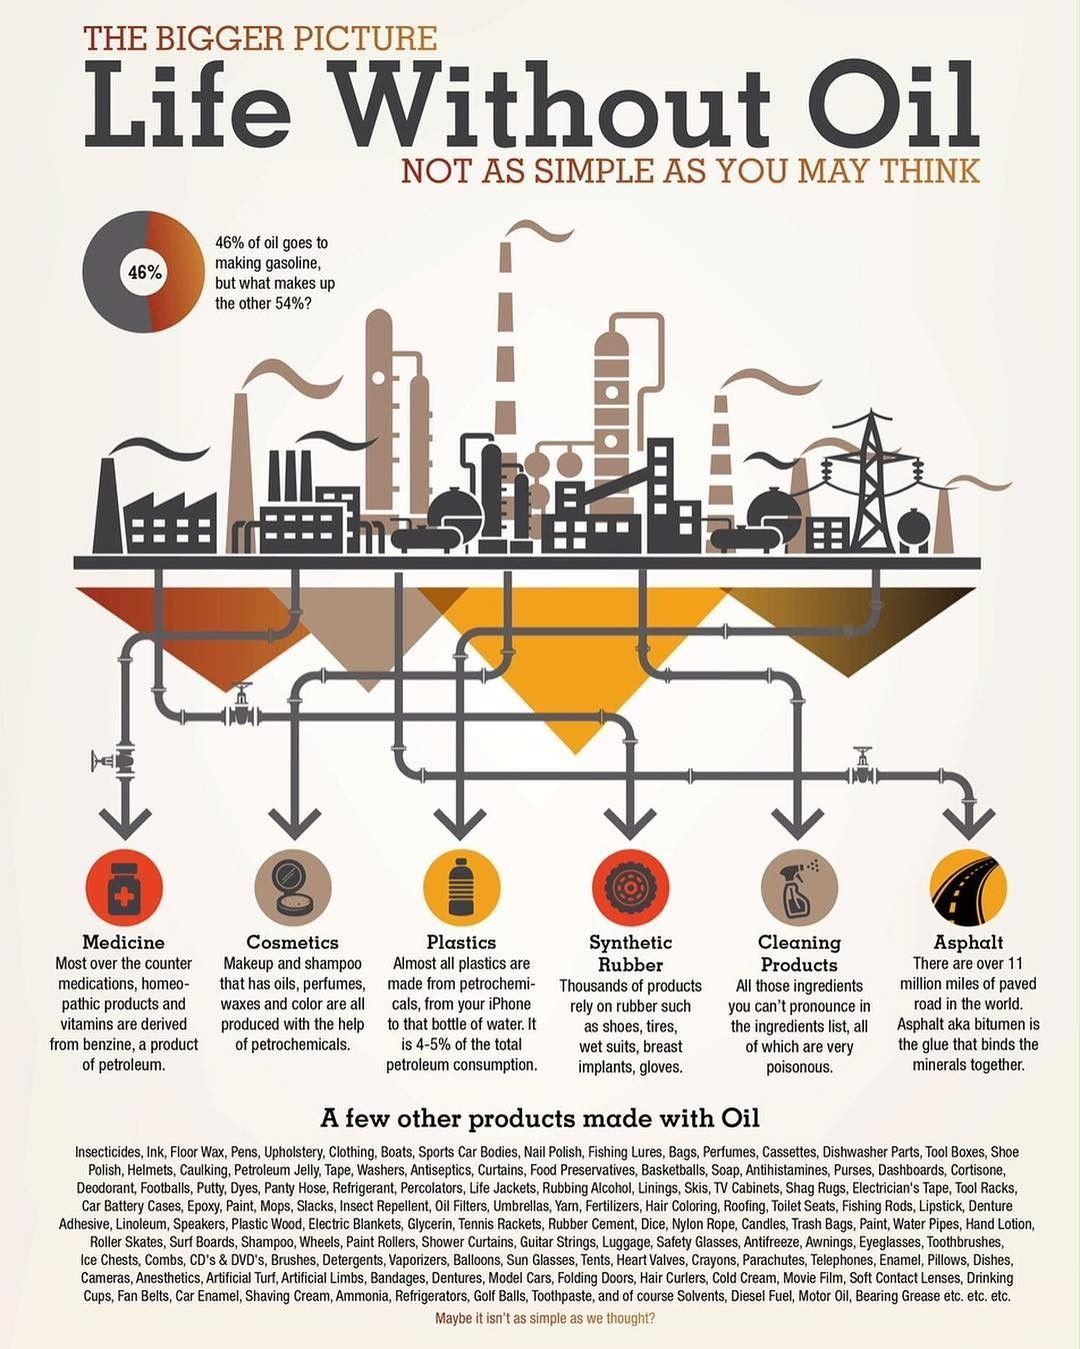 Let's have an informed conversation. Global oil demand is